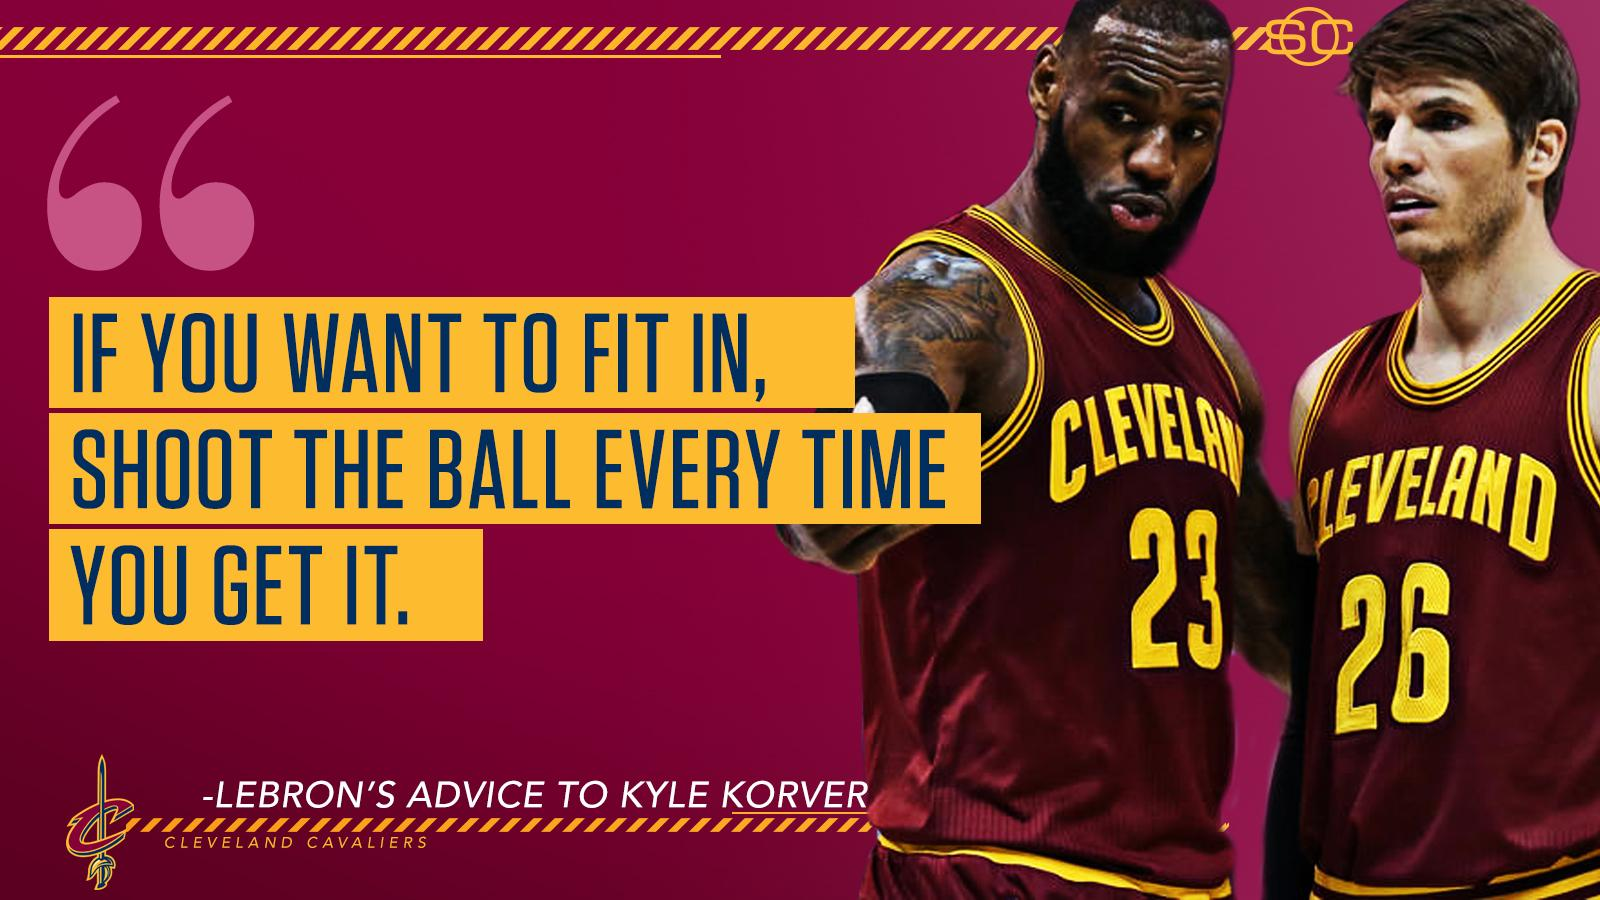 LeBron's advice for Kyle Korver is simple. https://t.co/qlTm6TvS3O